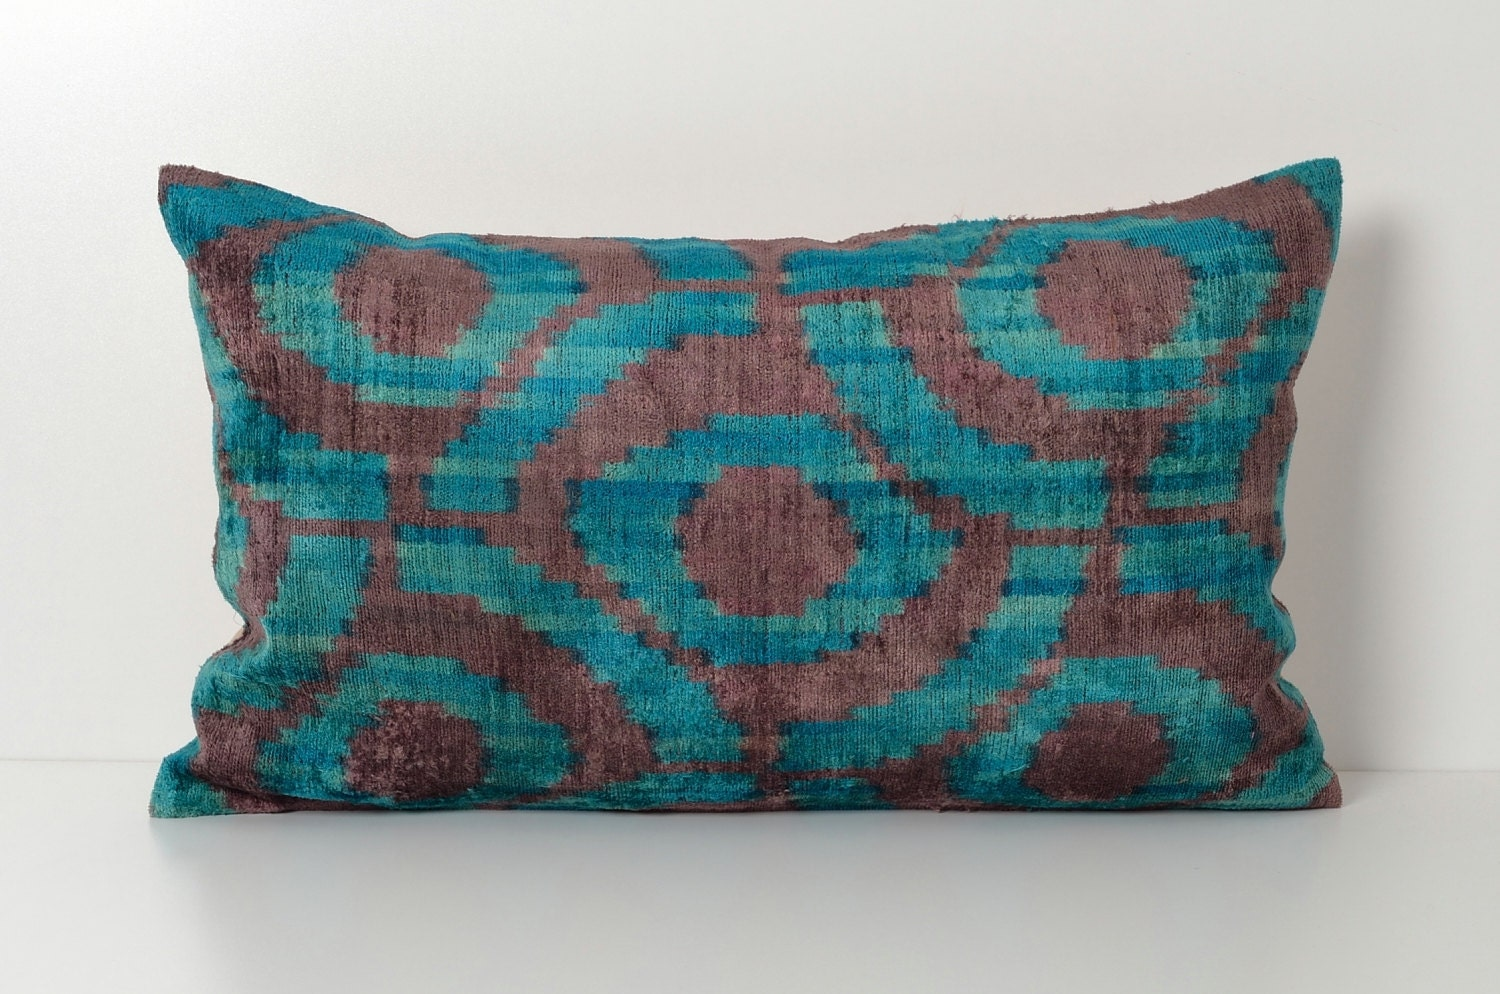 Decorative Pillows In Turquoise : Turquoise Ikat Pillow Throw Pillow Decorative Sofa by pillowme